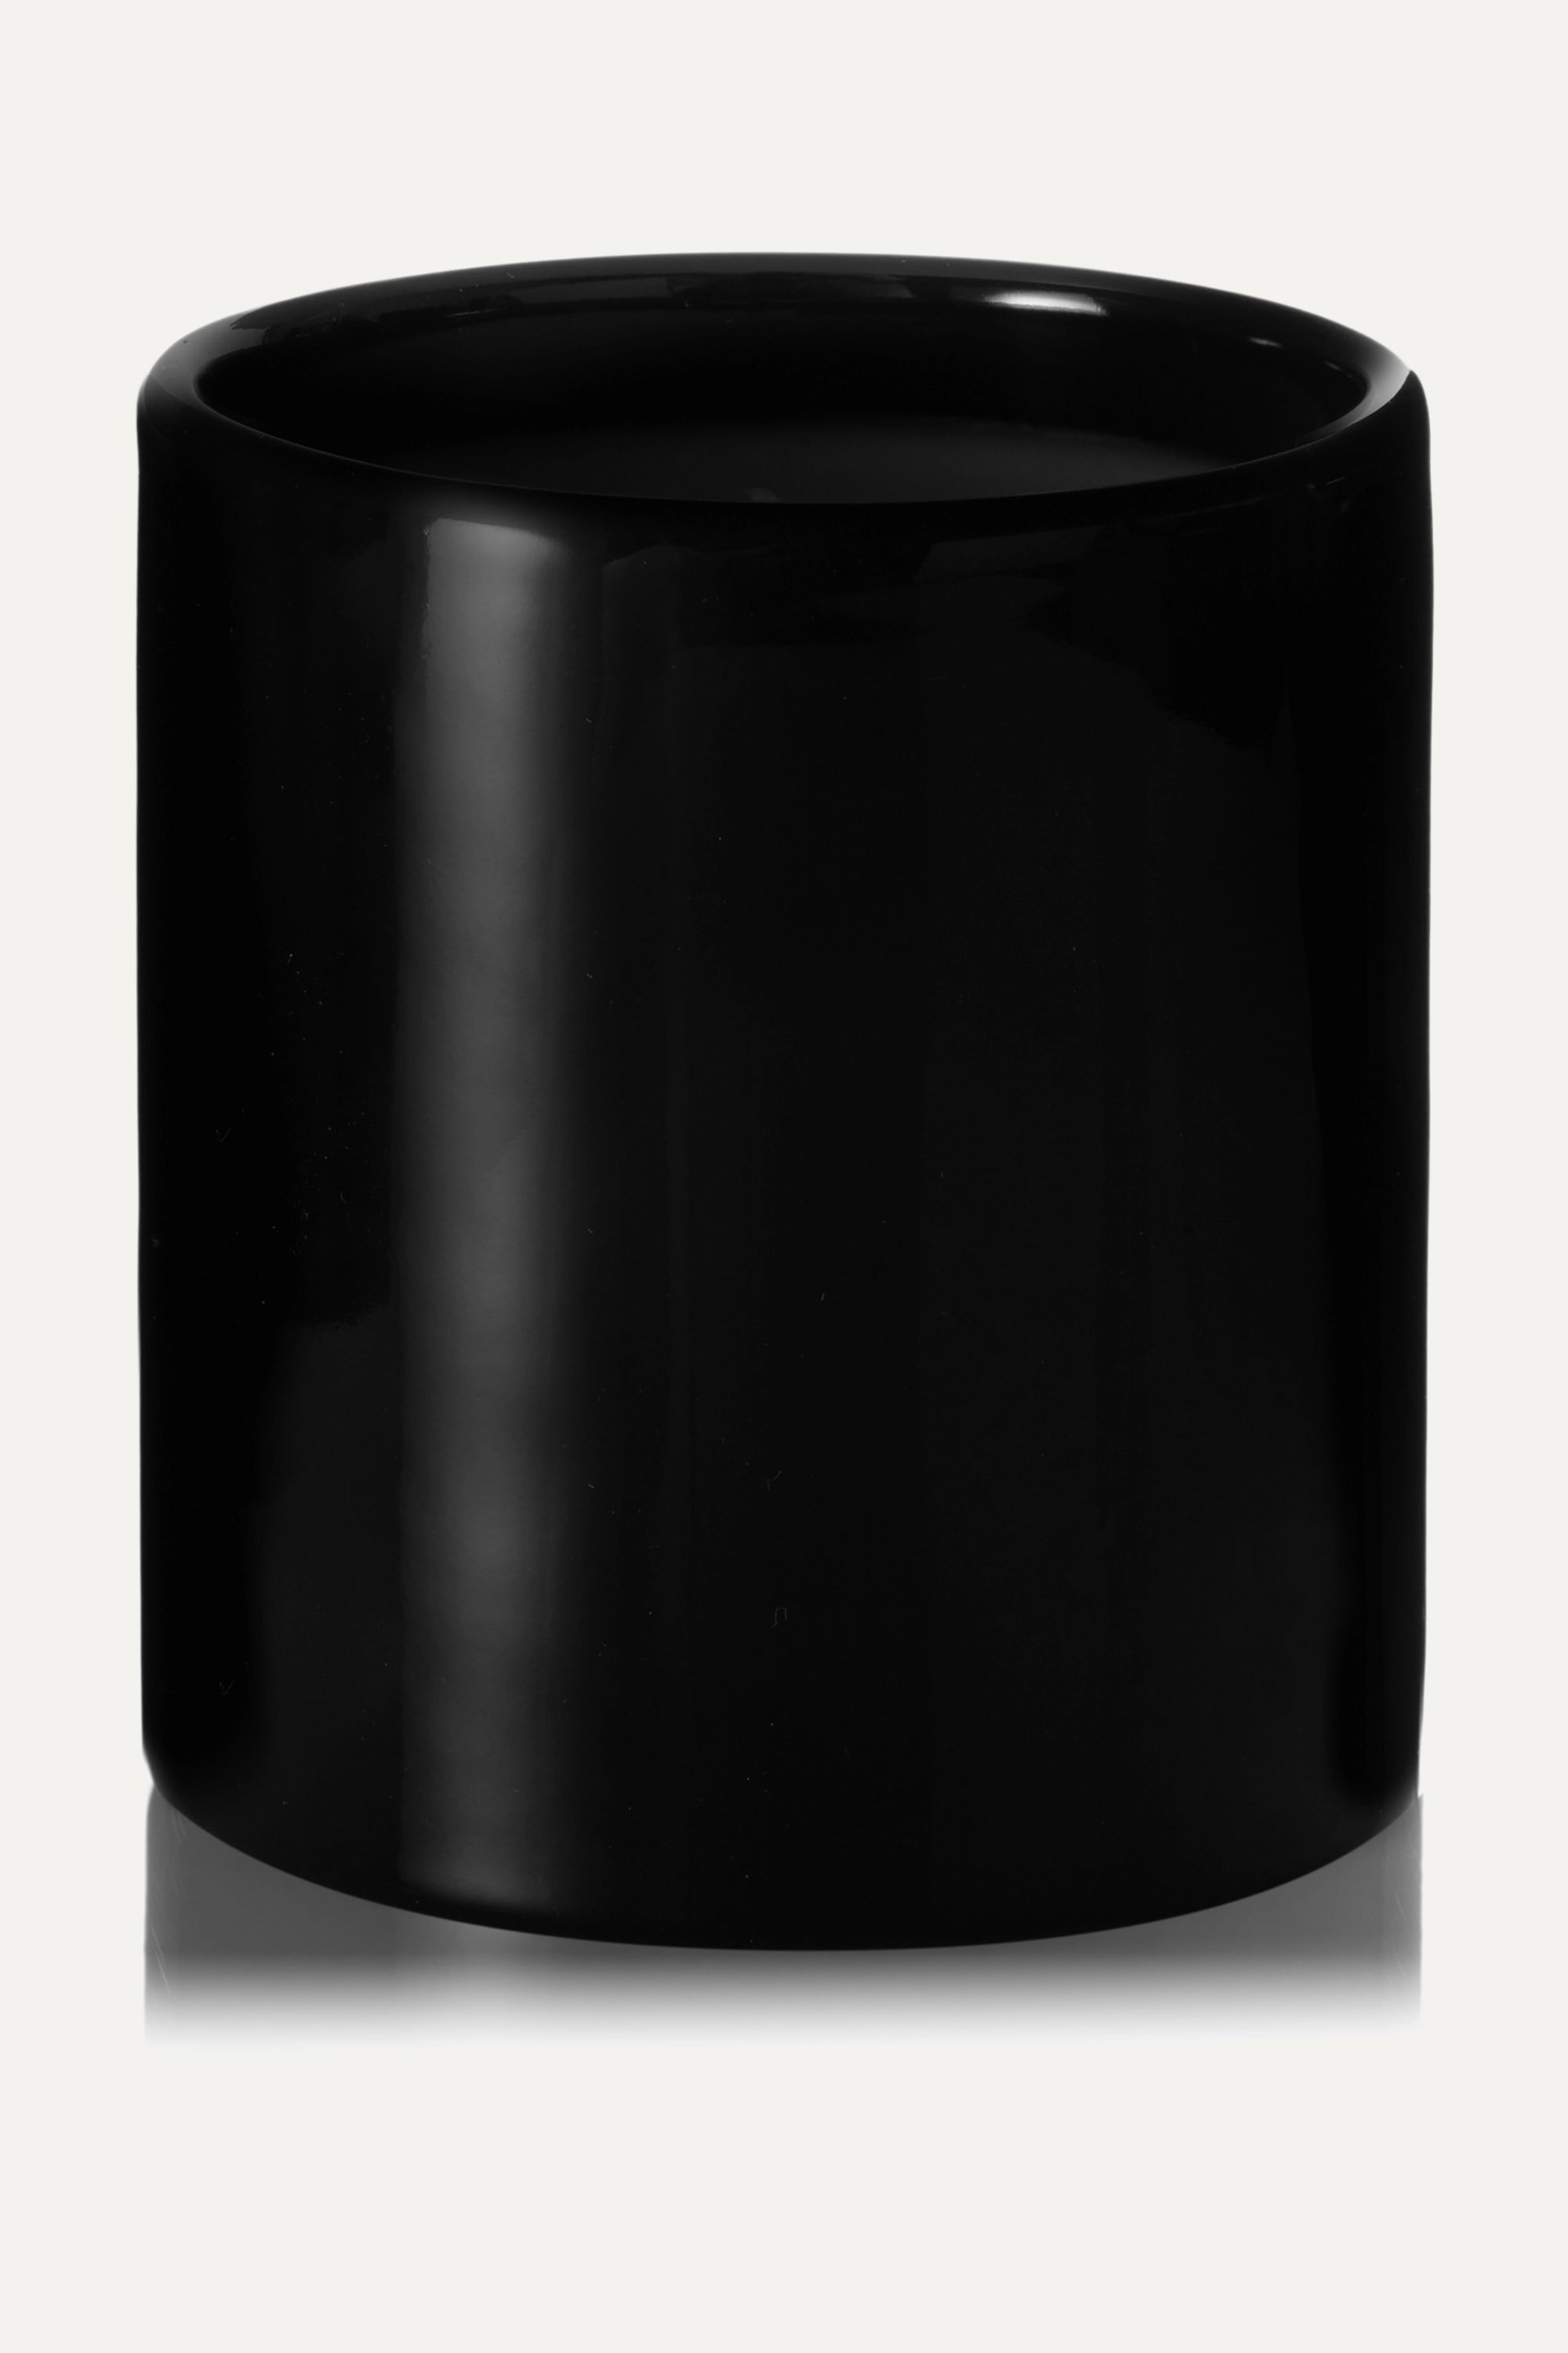 Burberry Beauty Dewy Grass scented candle, 240g